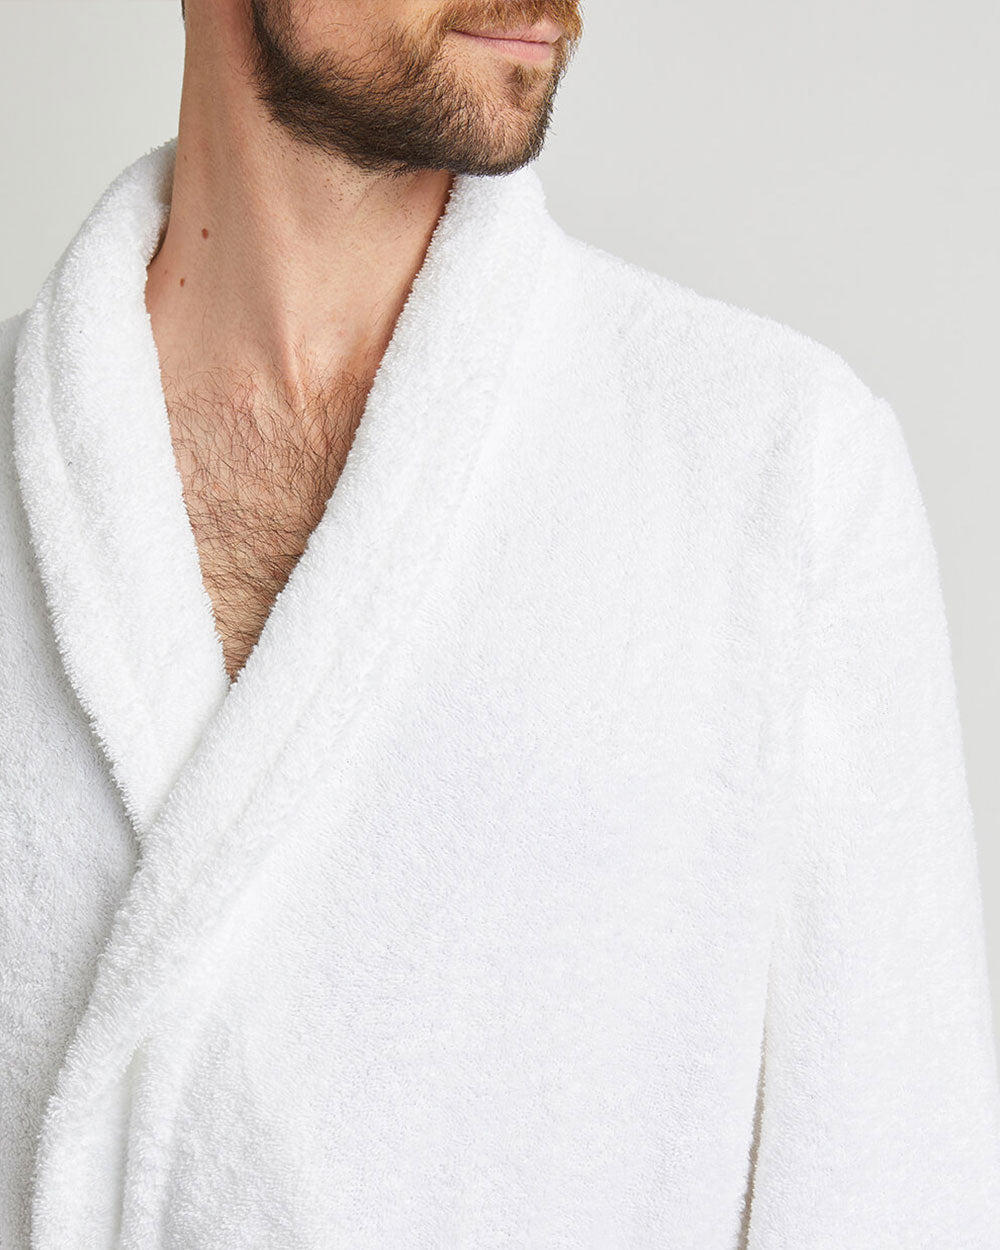 Unisex Cotton Towelling Robe - White